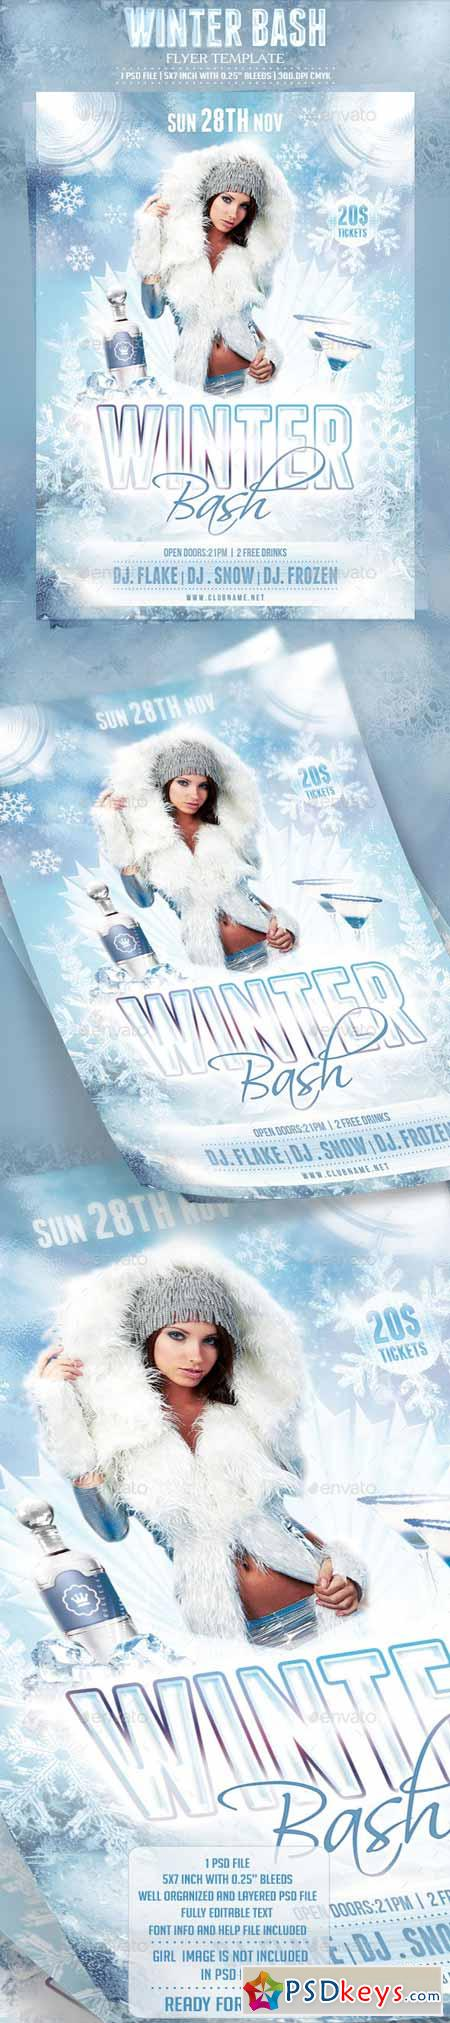 Winter Bash Flyer Template 9264261